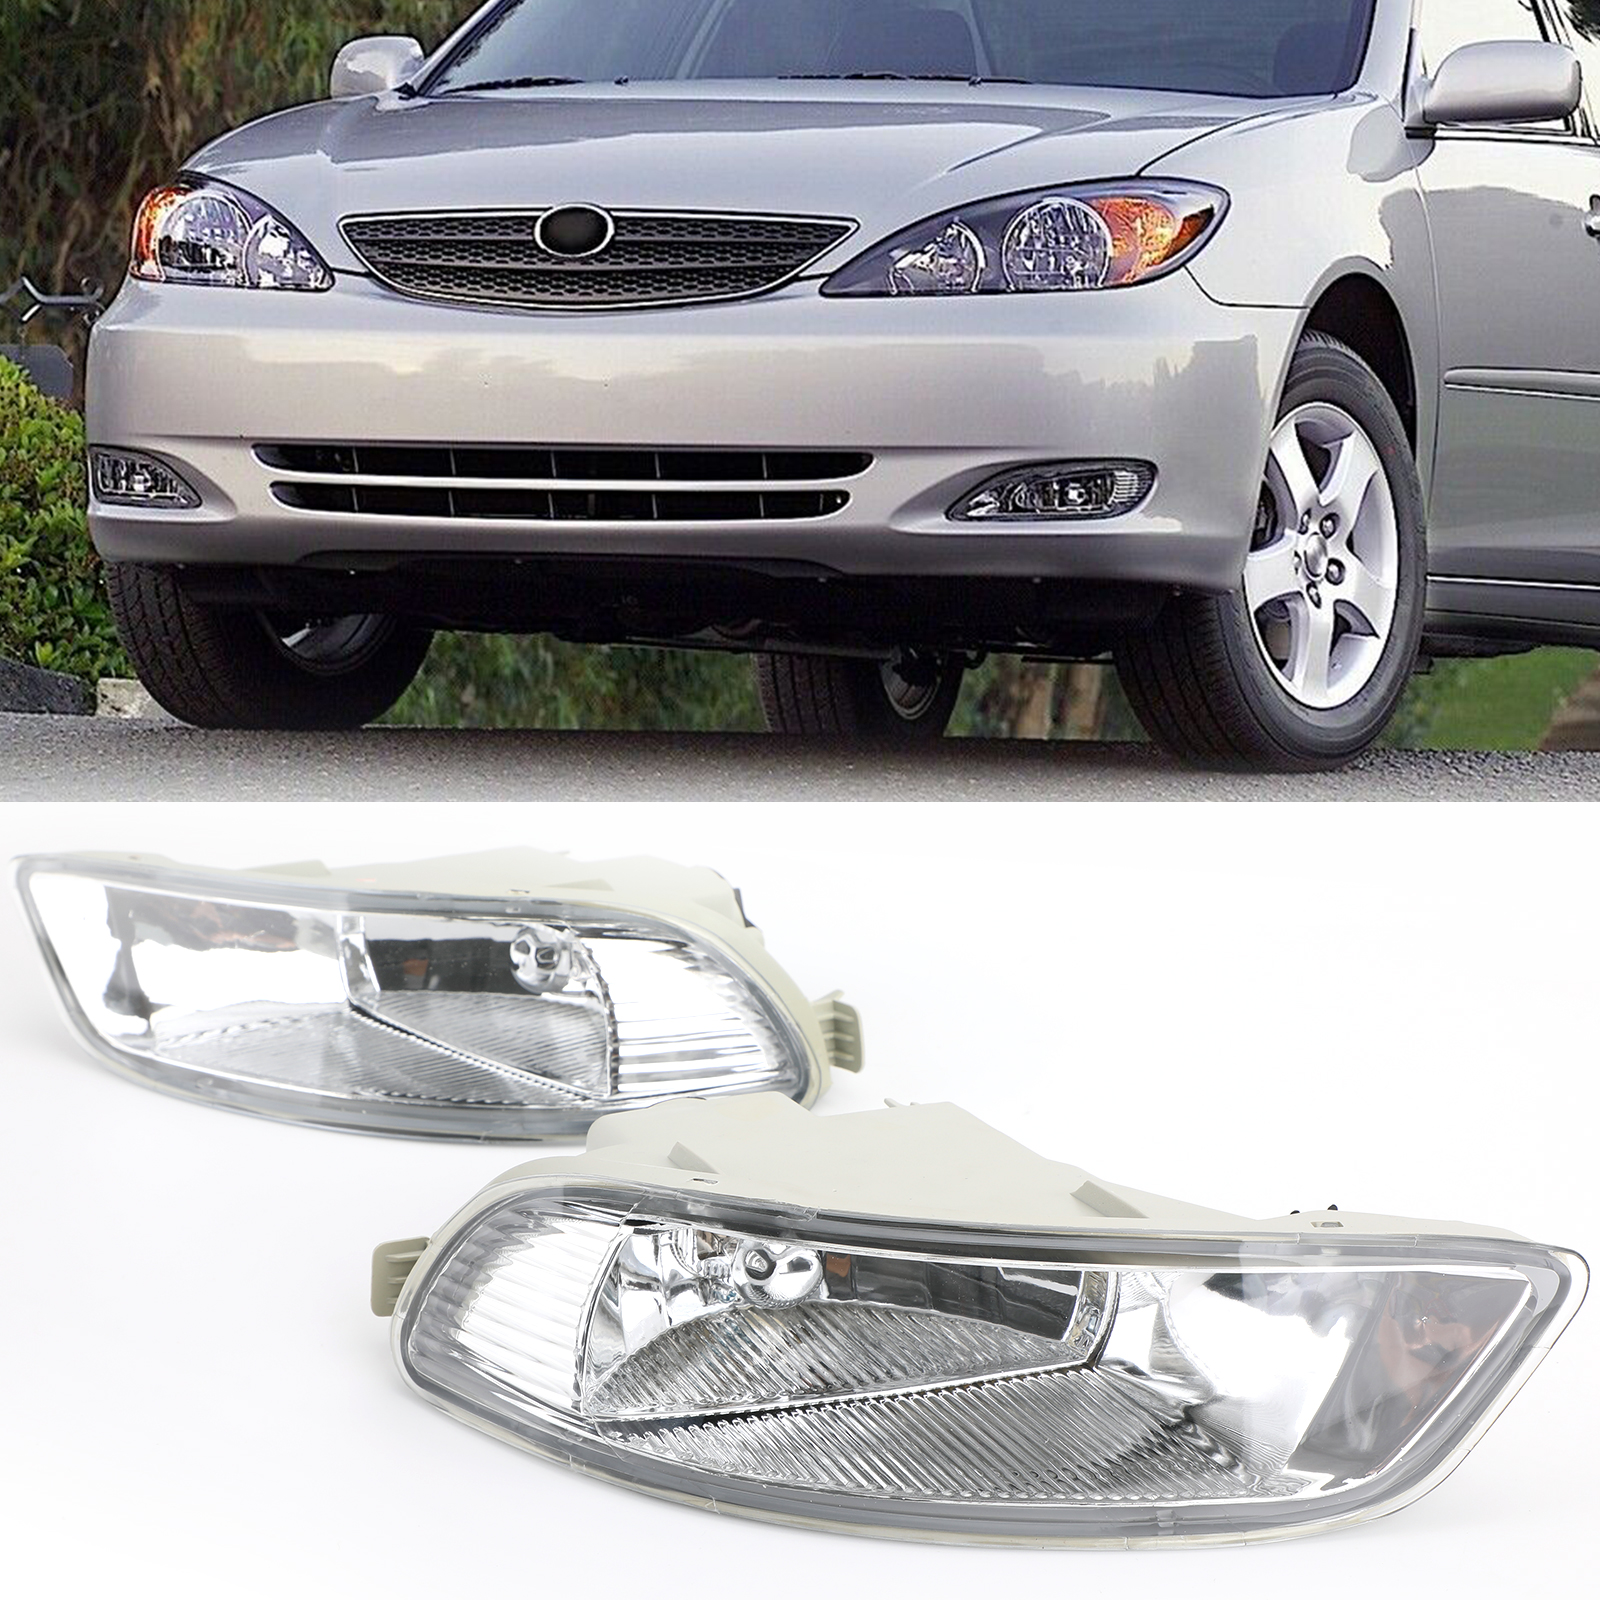 Areyourshop 2 Pair Front Bumper Lamp Clear Fog Light For Toyota Corolla Camry Solara 2005 2008 Front Fog Light Car Accessories